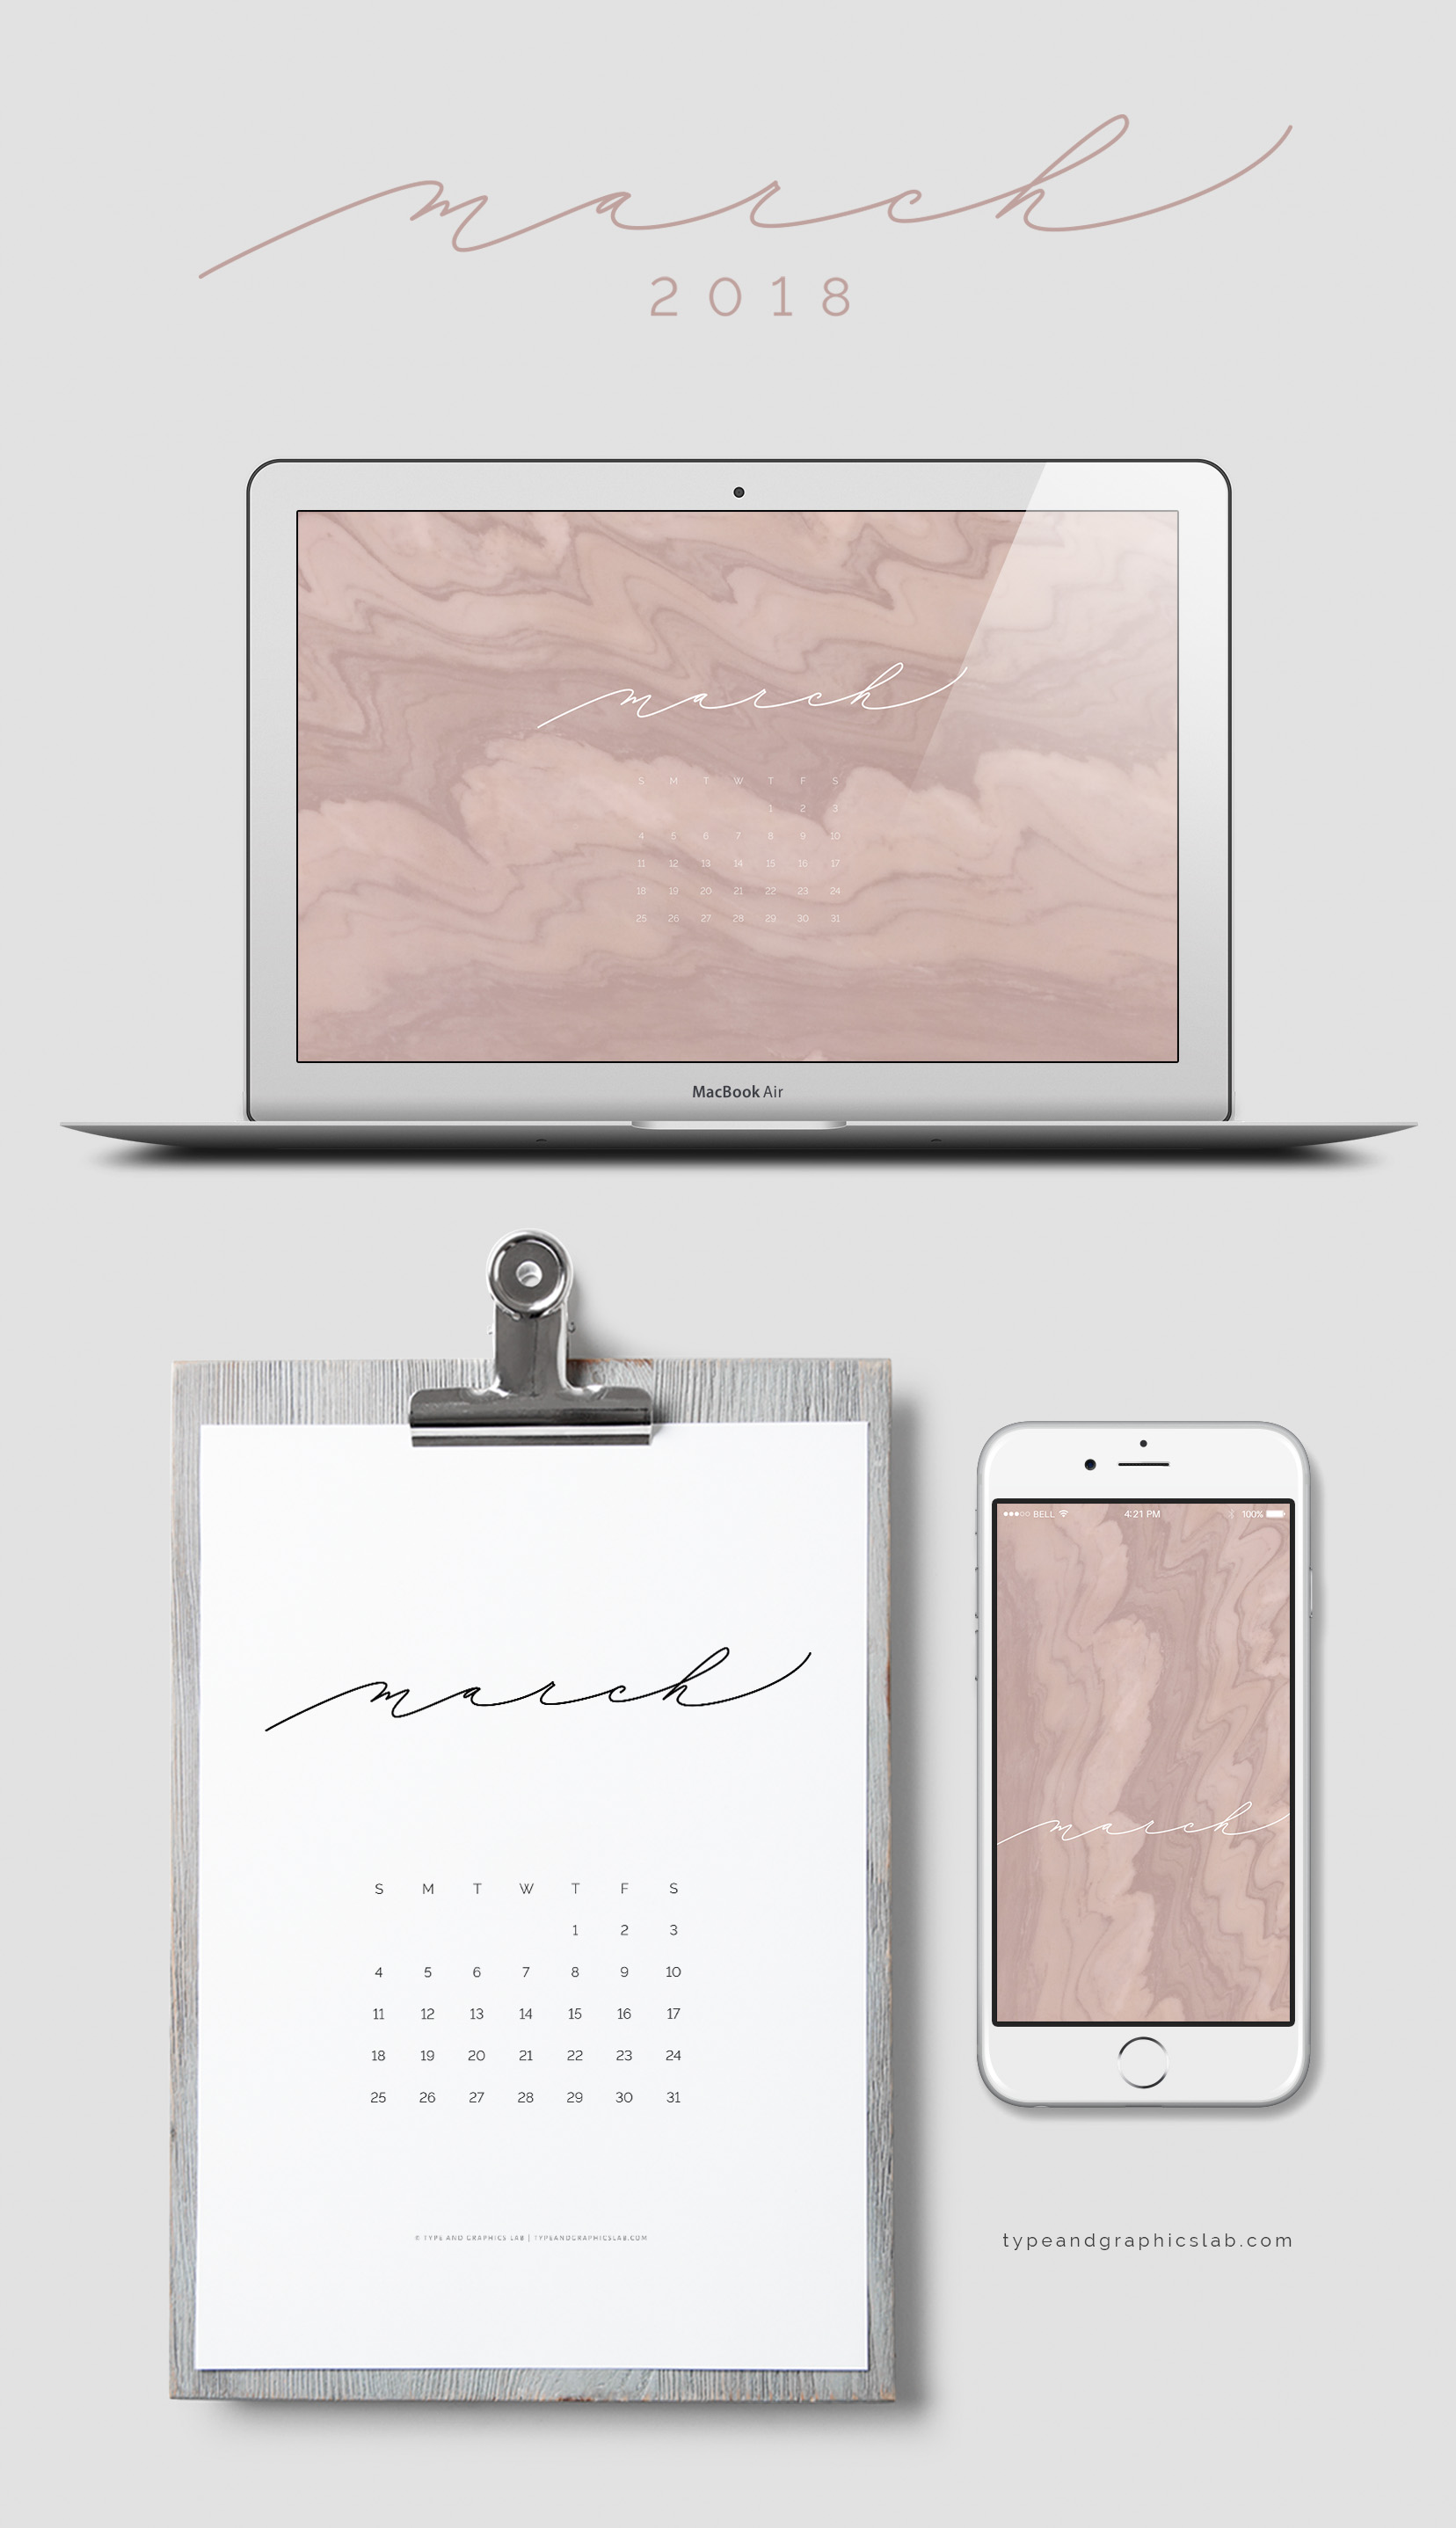 Download free desktop, mobile, and printable calendar for March 2018 |©typeandgraphicslab.com | For personal use only